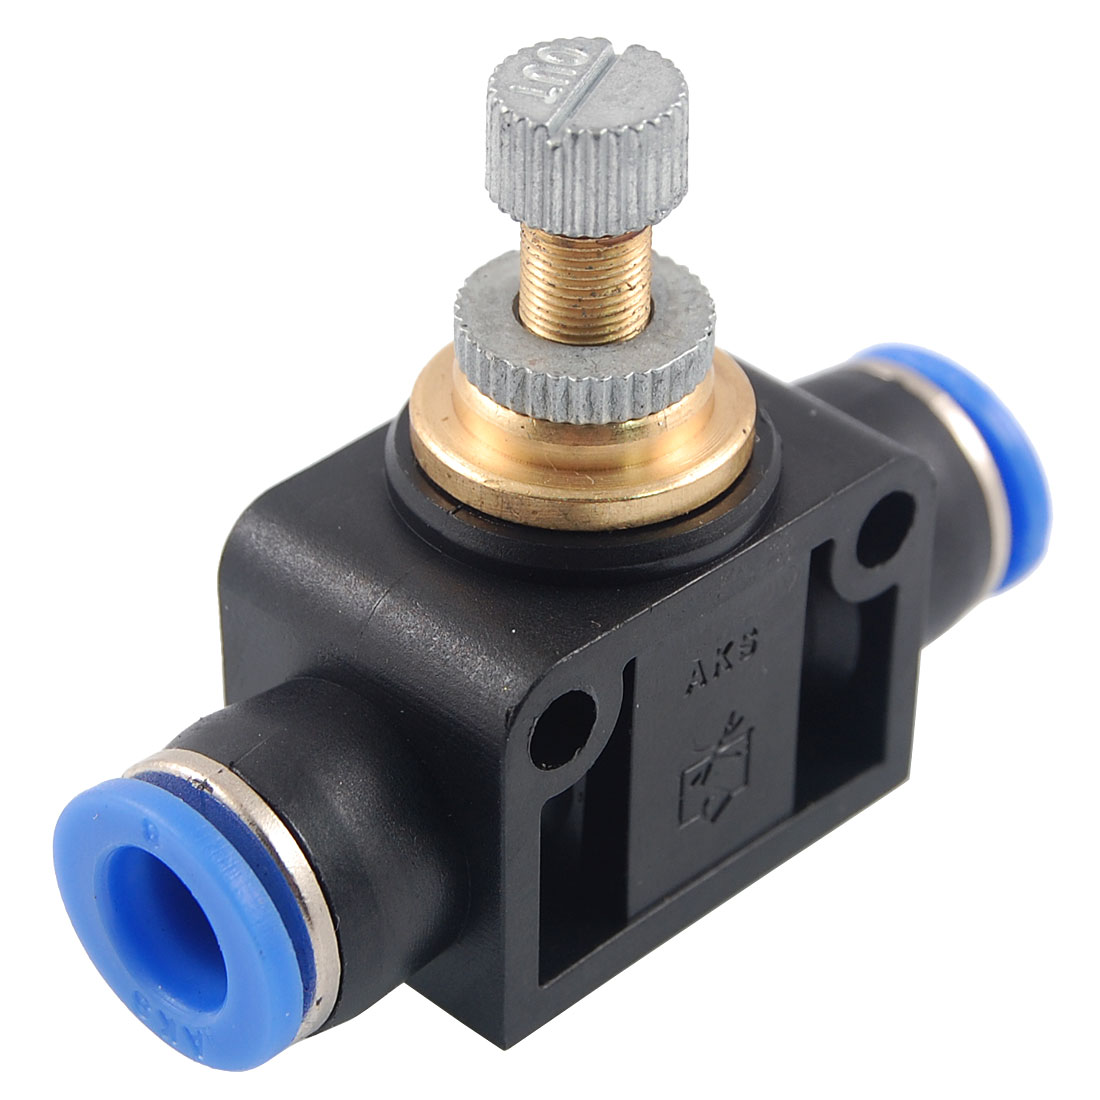 8mm to 8mm Push In Speed Controller Pneumatic Air Valve